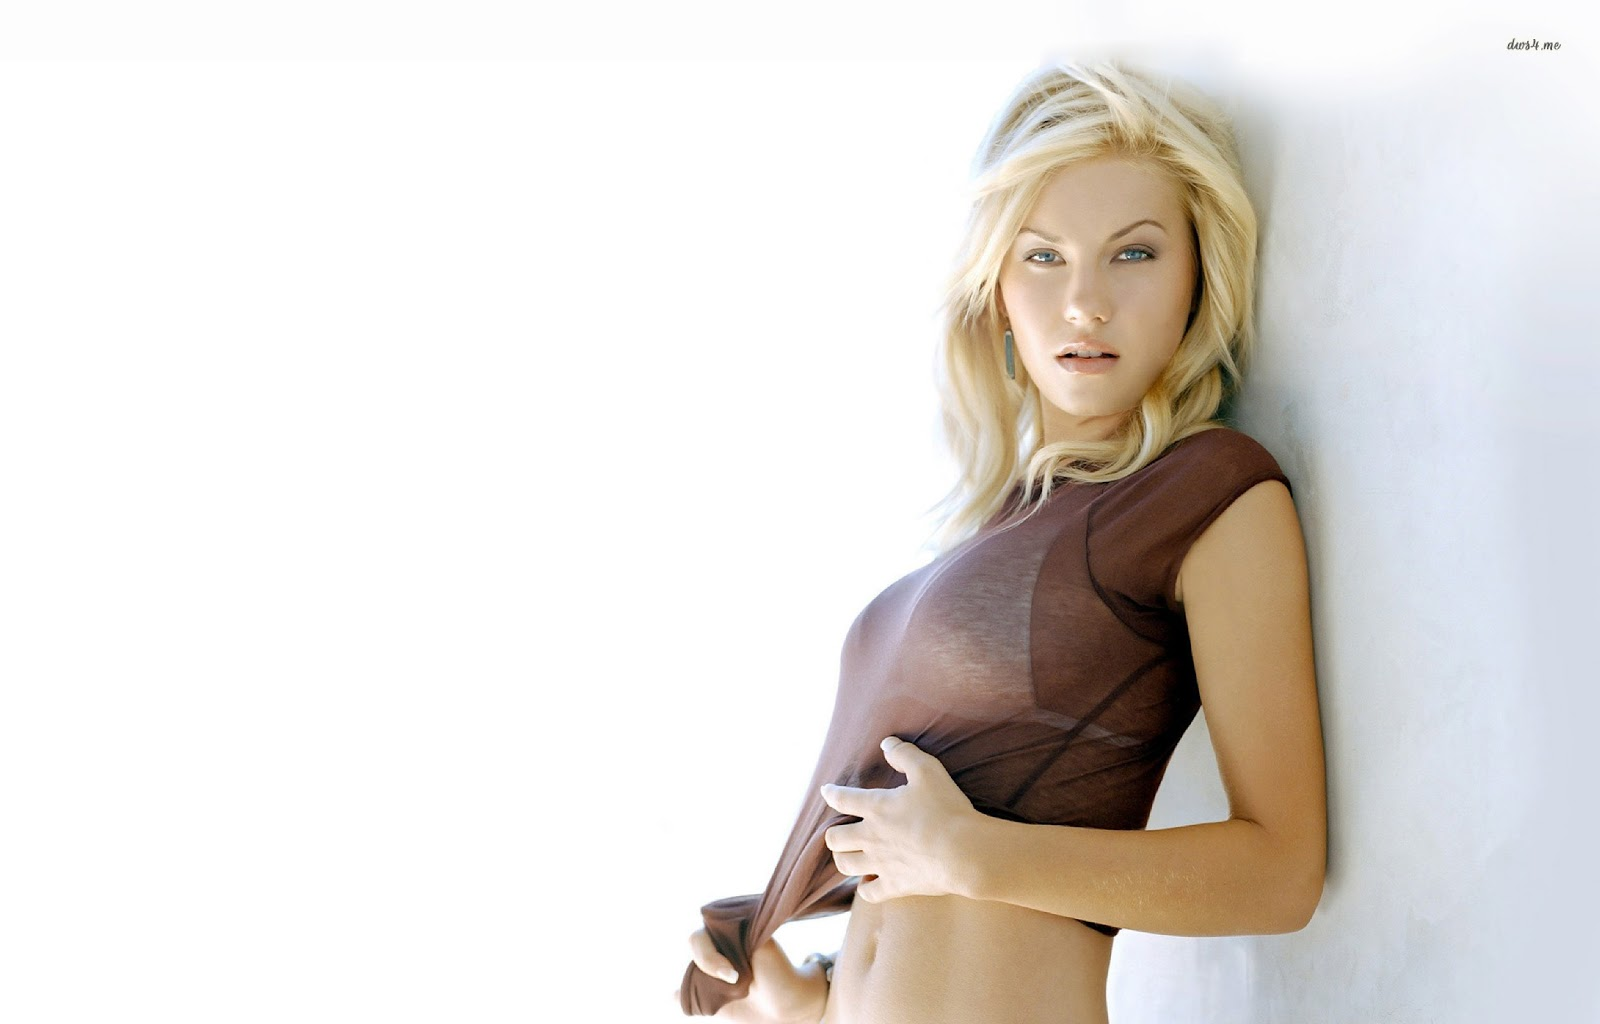 Elisha Cuthbert Beauty Hot HD Wallpapers - HD Wallpaper | HD Wallpaper